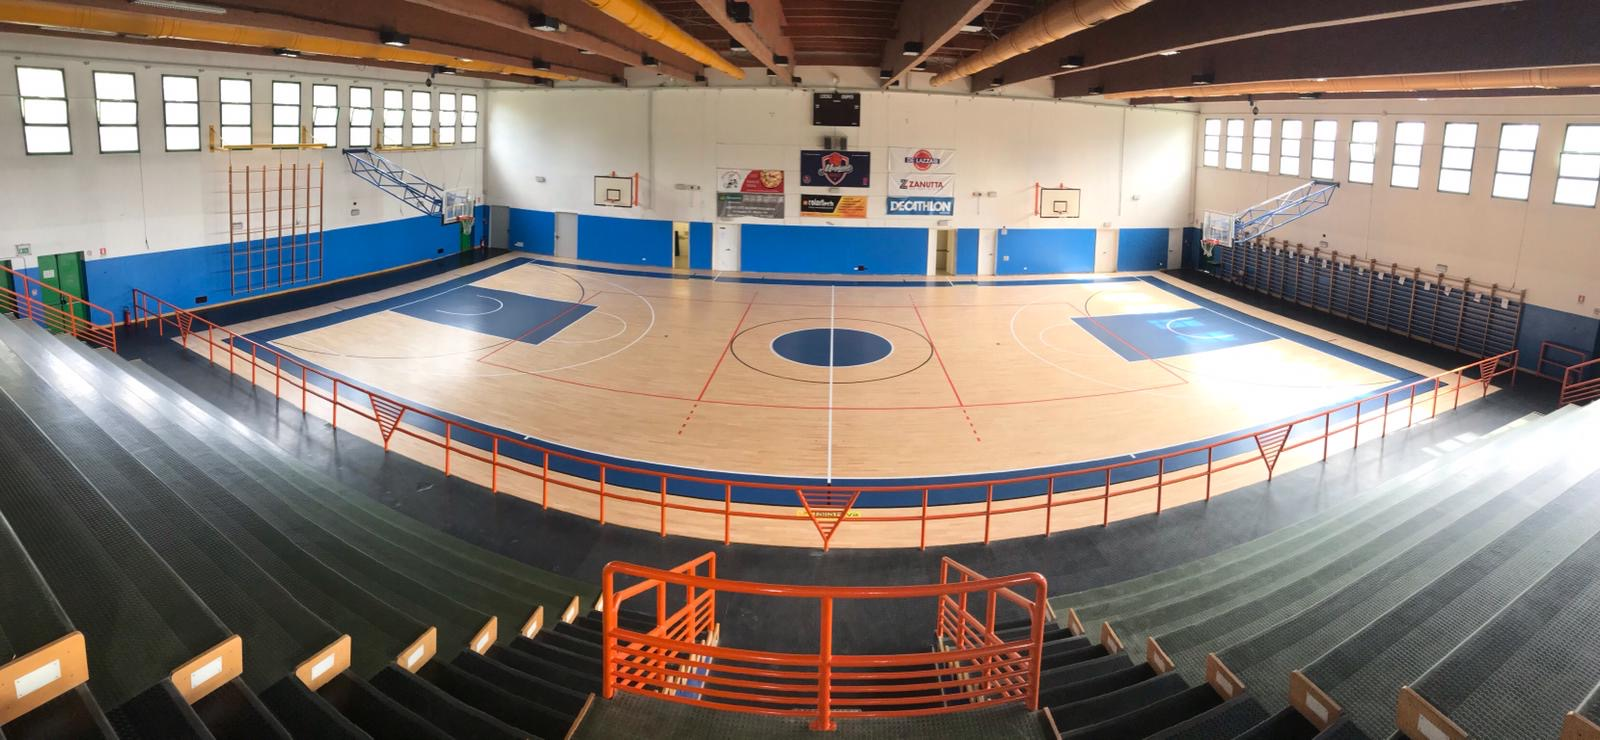 For great basketball a sports parquet like new